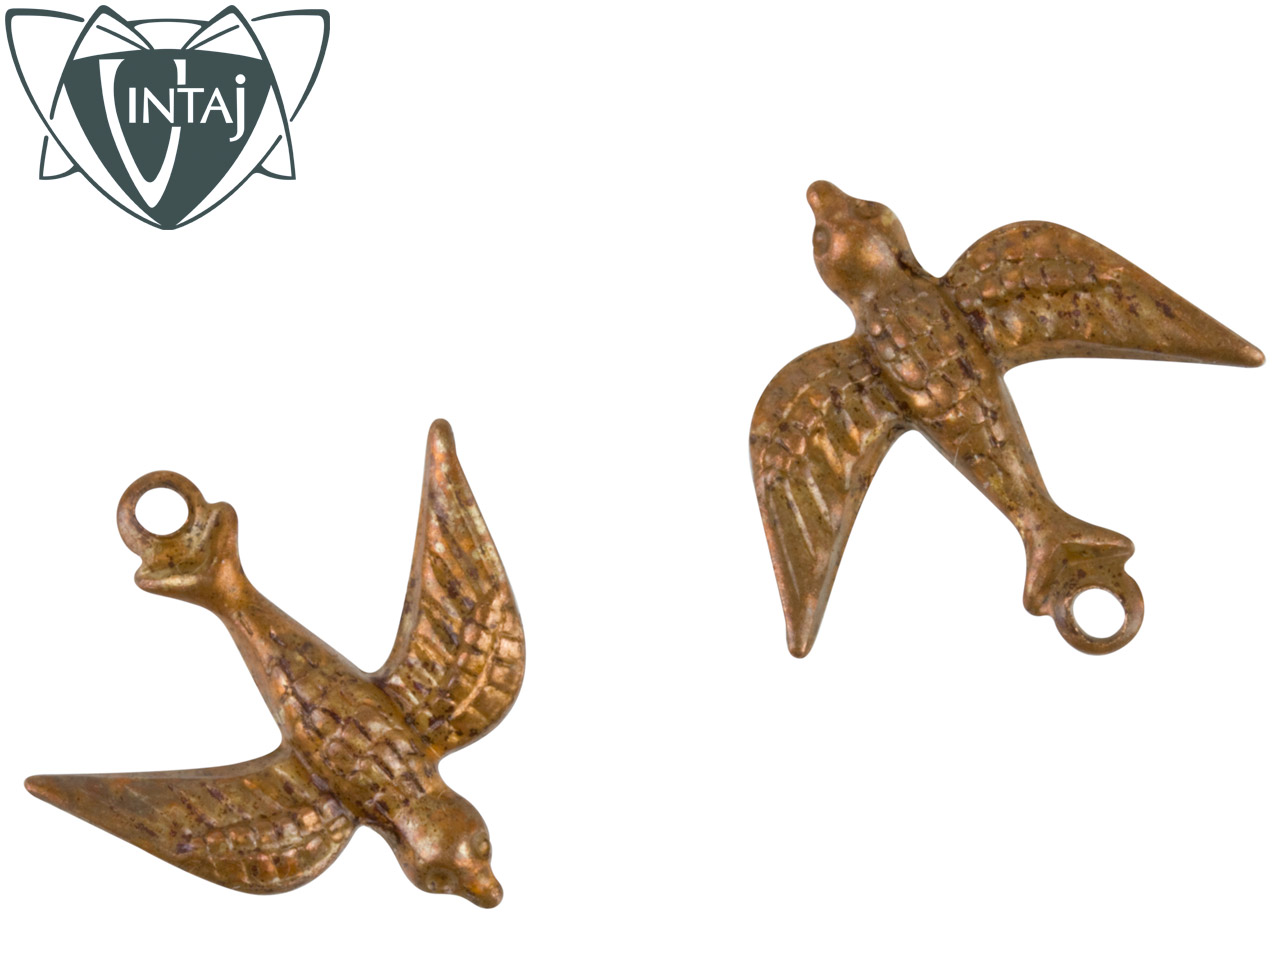 Vintaj Artisan Copper Watchful Bird 17x16.5mm Pack of 2